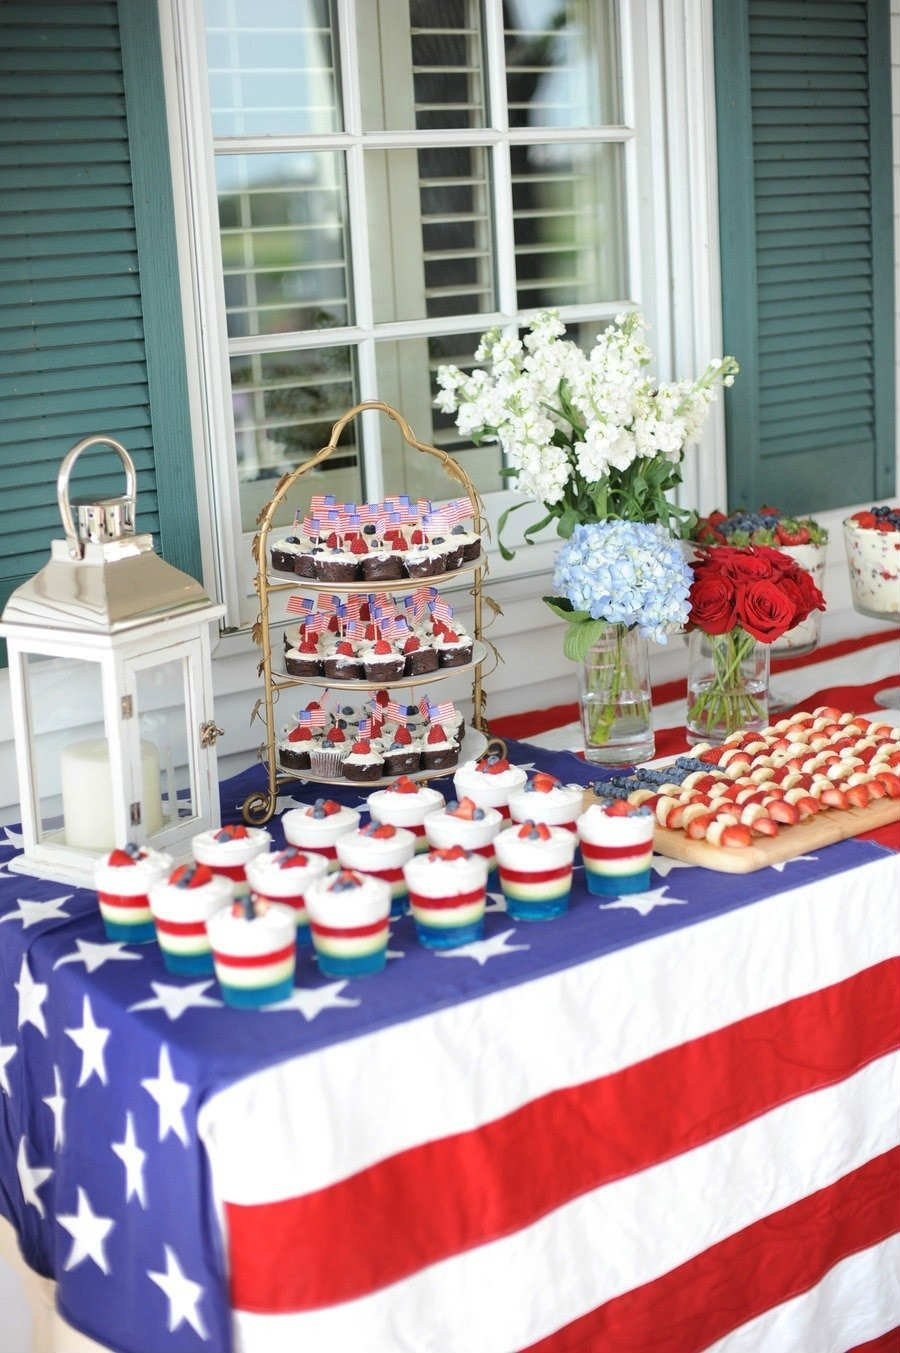 10 Beautiful Ideas For The 4Th Of July 10 fourth of july decoration ideas tinyme blog 1 2021